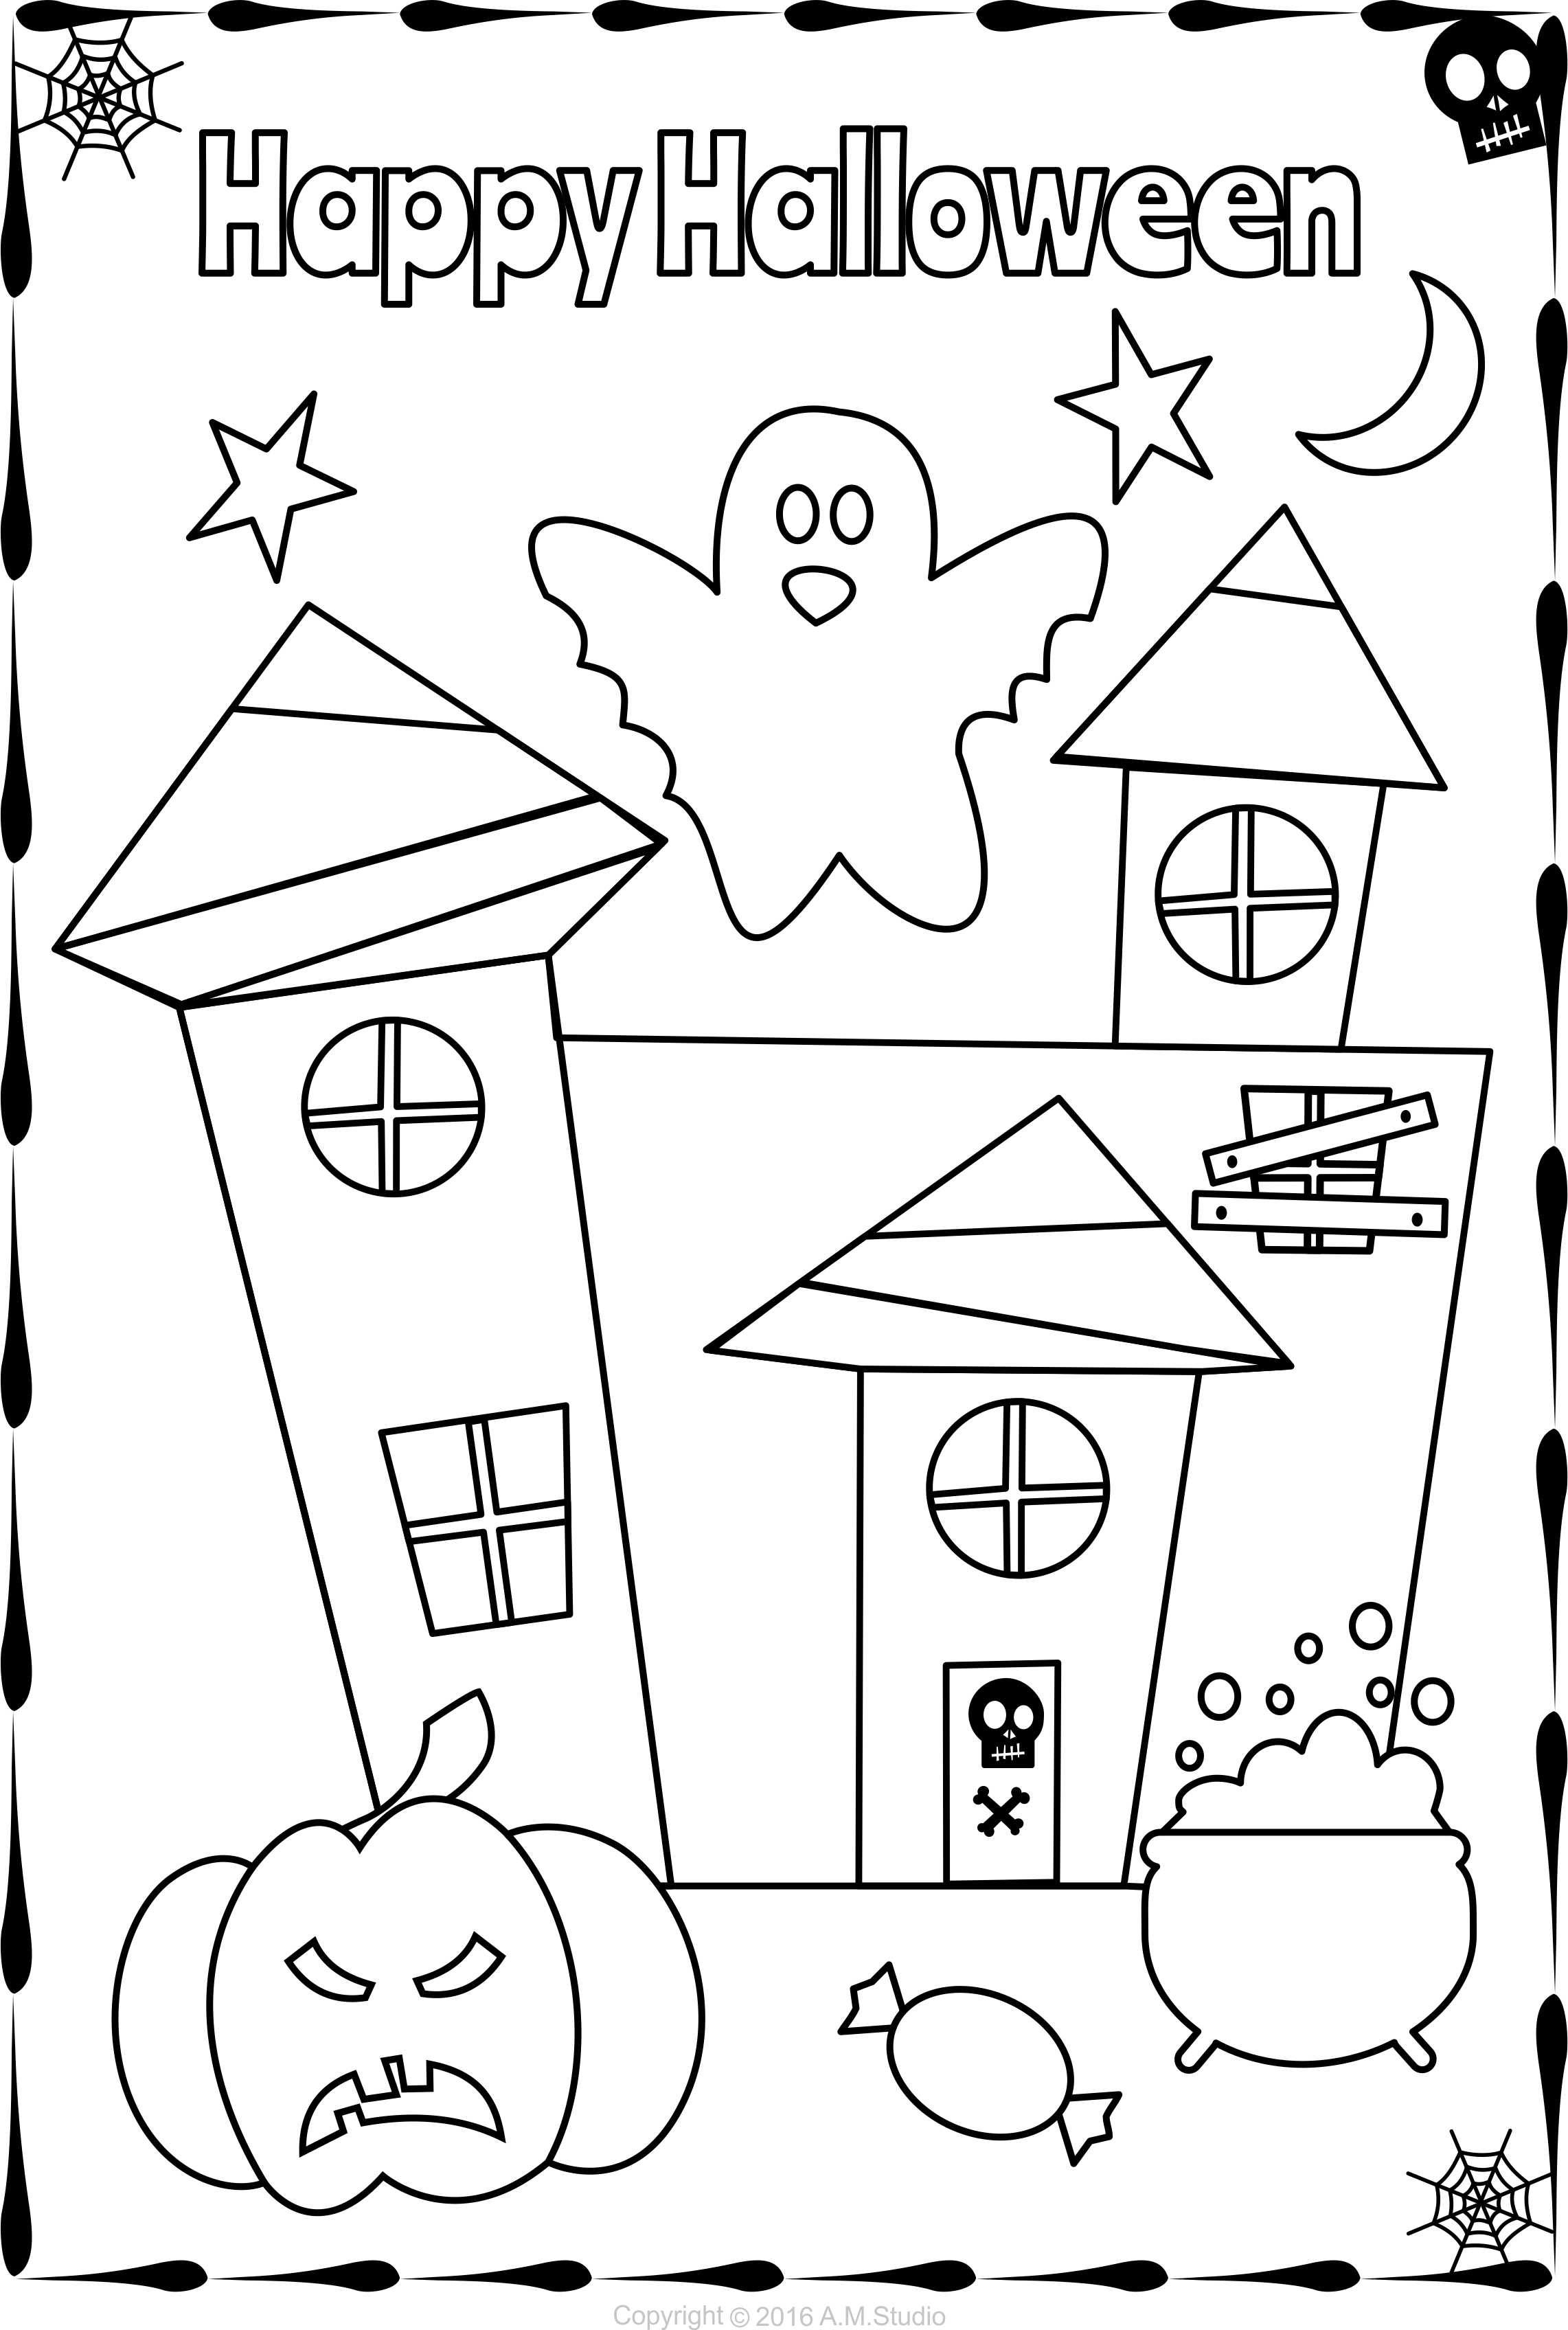 13 Halloween Themed Coloring Pages For Kids